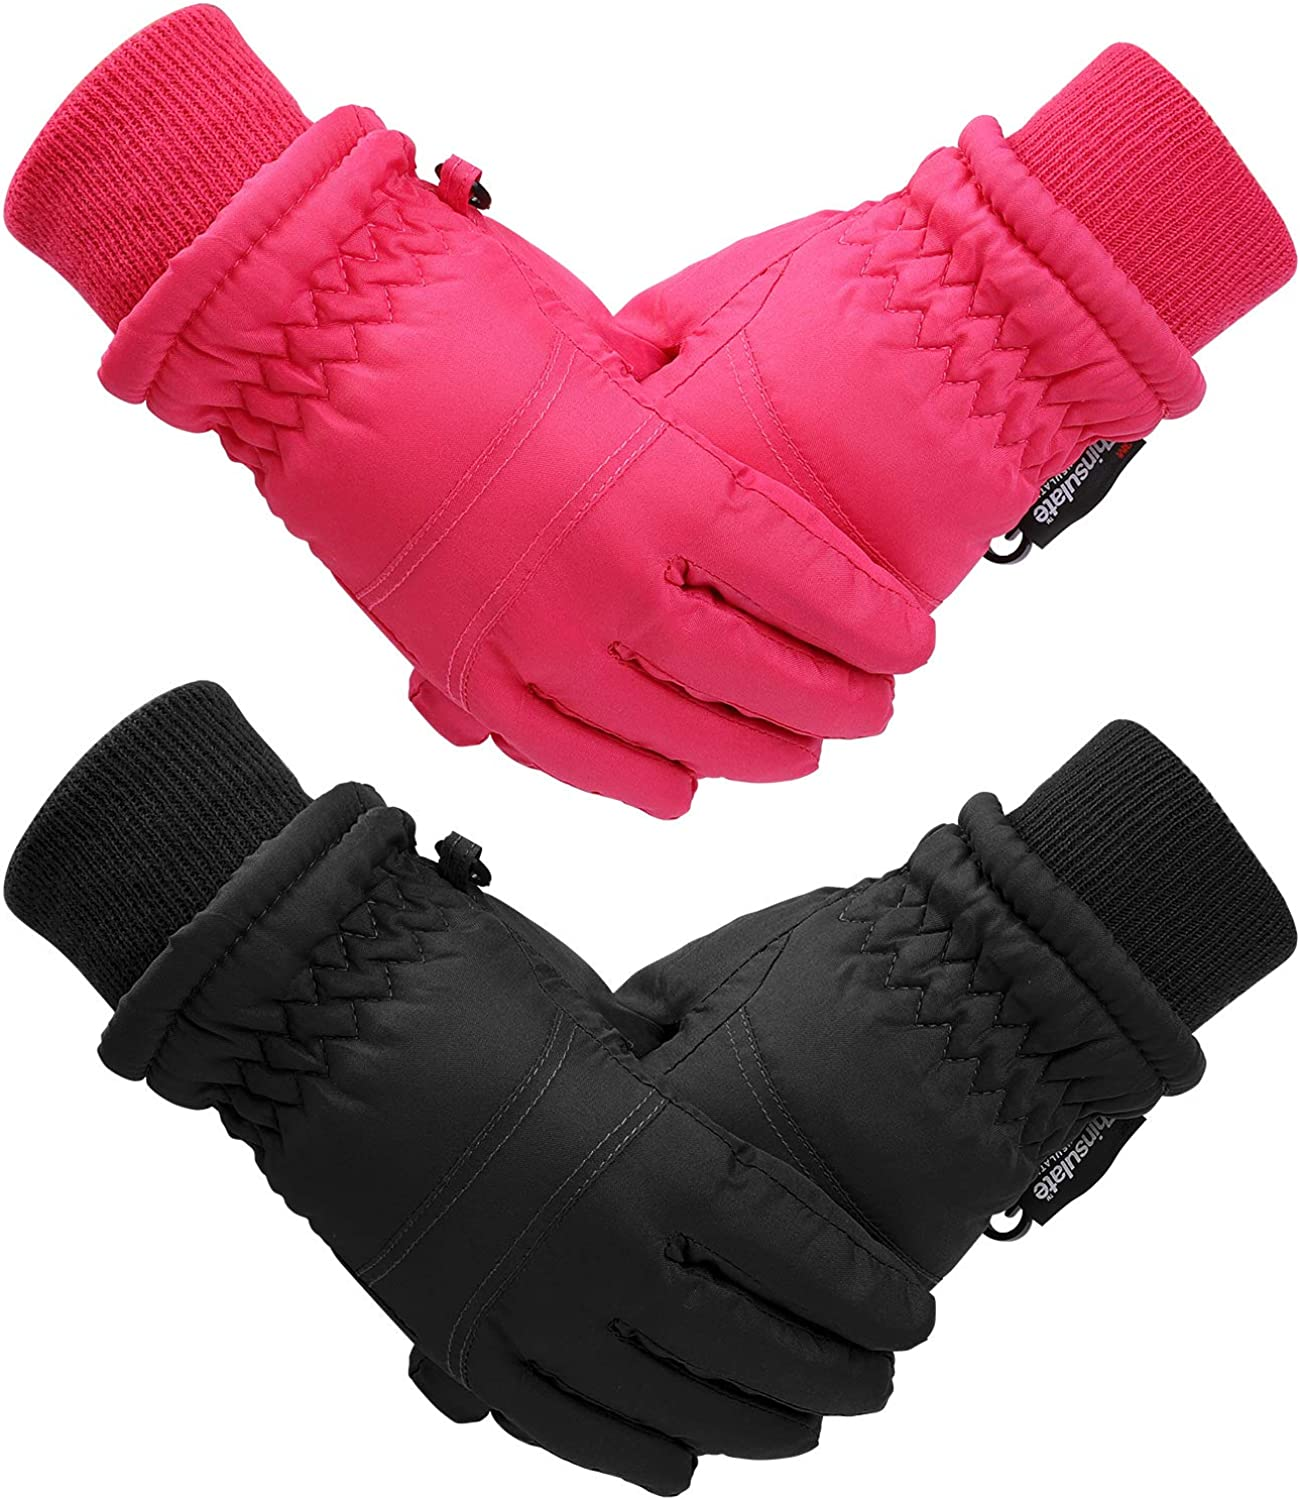 Cooraby 2 Pairs Kids Winter Gloves Warm Lined Ski Gloves Toddler Full Finger Snow Mittens for 1-3 Years Infants